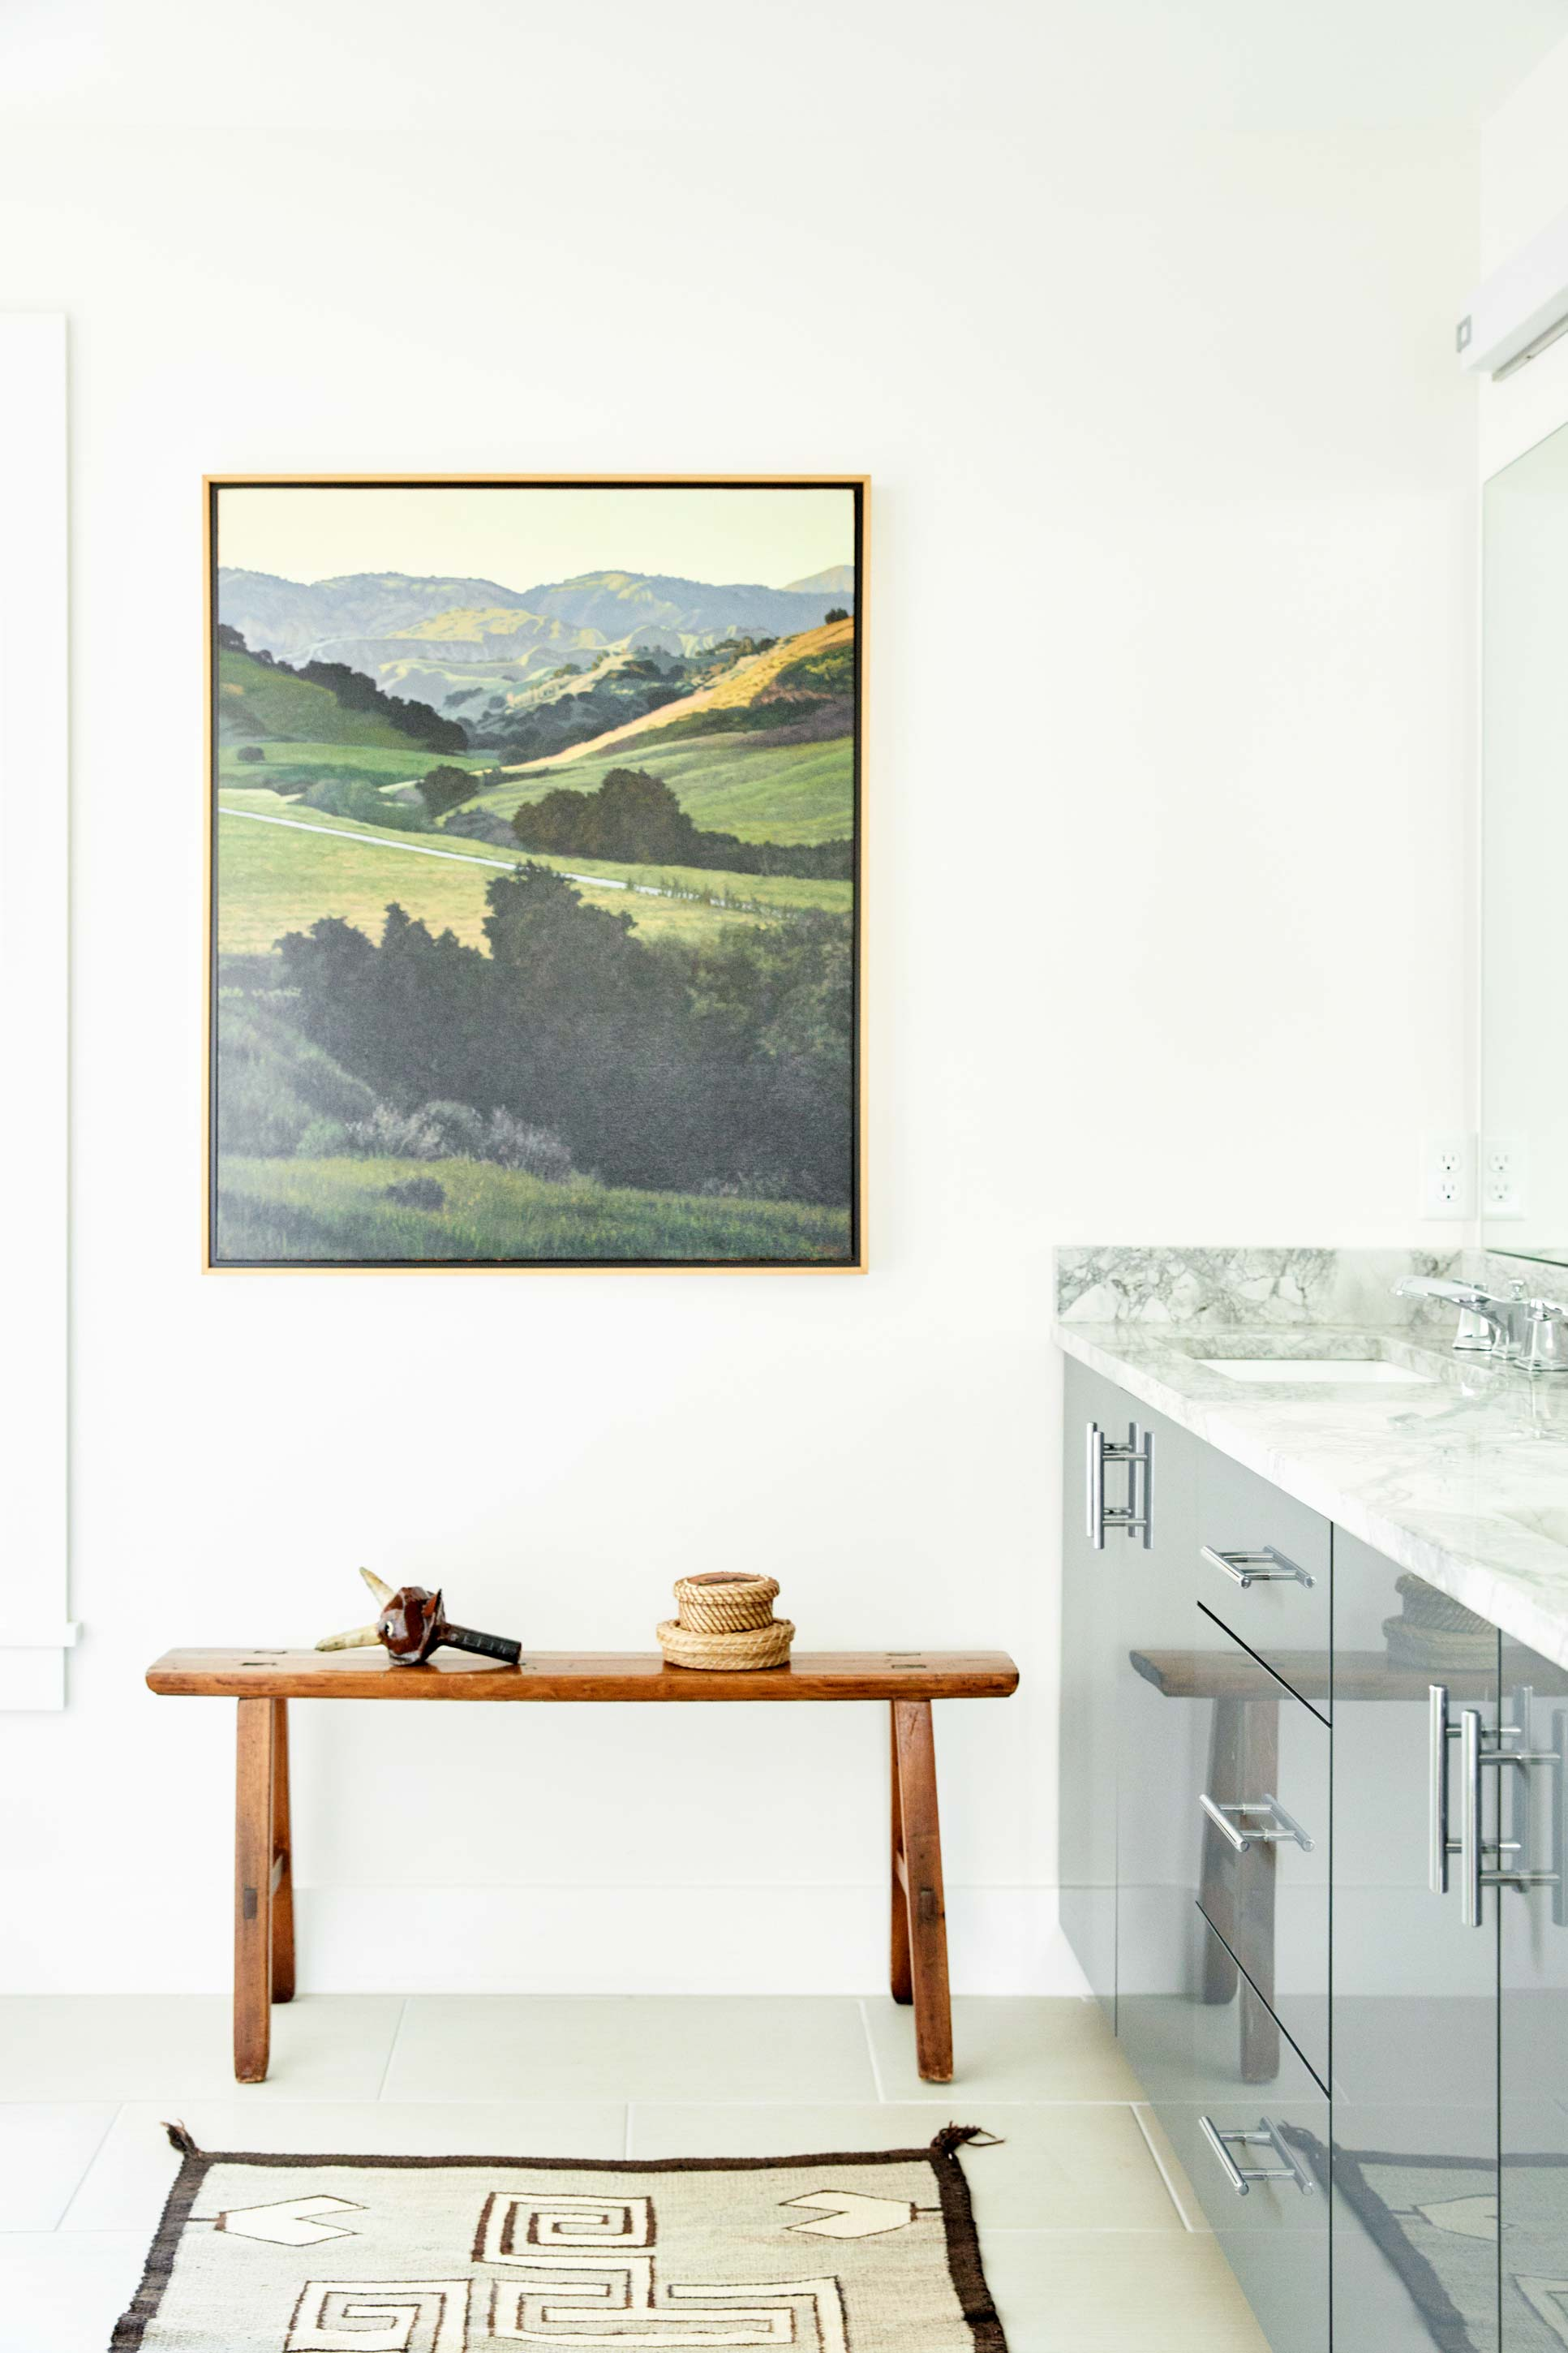 A curated spot in the master bath features a painting by Bruce Everett over a French nun's prayer bench from the late 1700s. On the bench is a Krampus by E. Michael Contreras and two Wabanaki baskets topped with porcupine quills. A circa-1920s Navajo weaving completes the look.